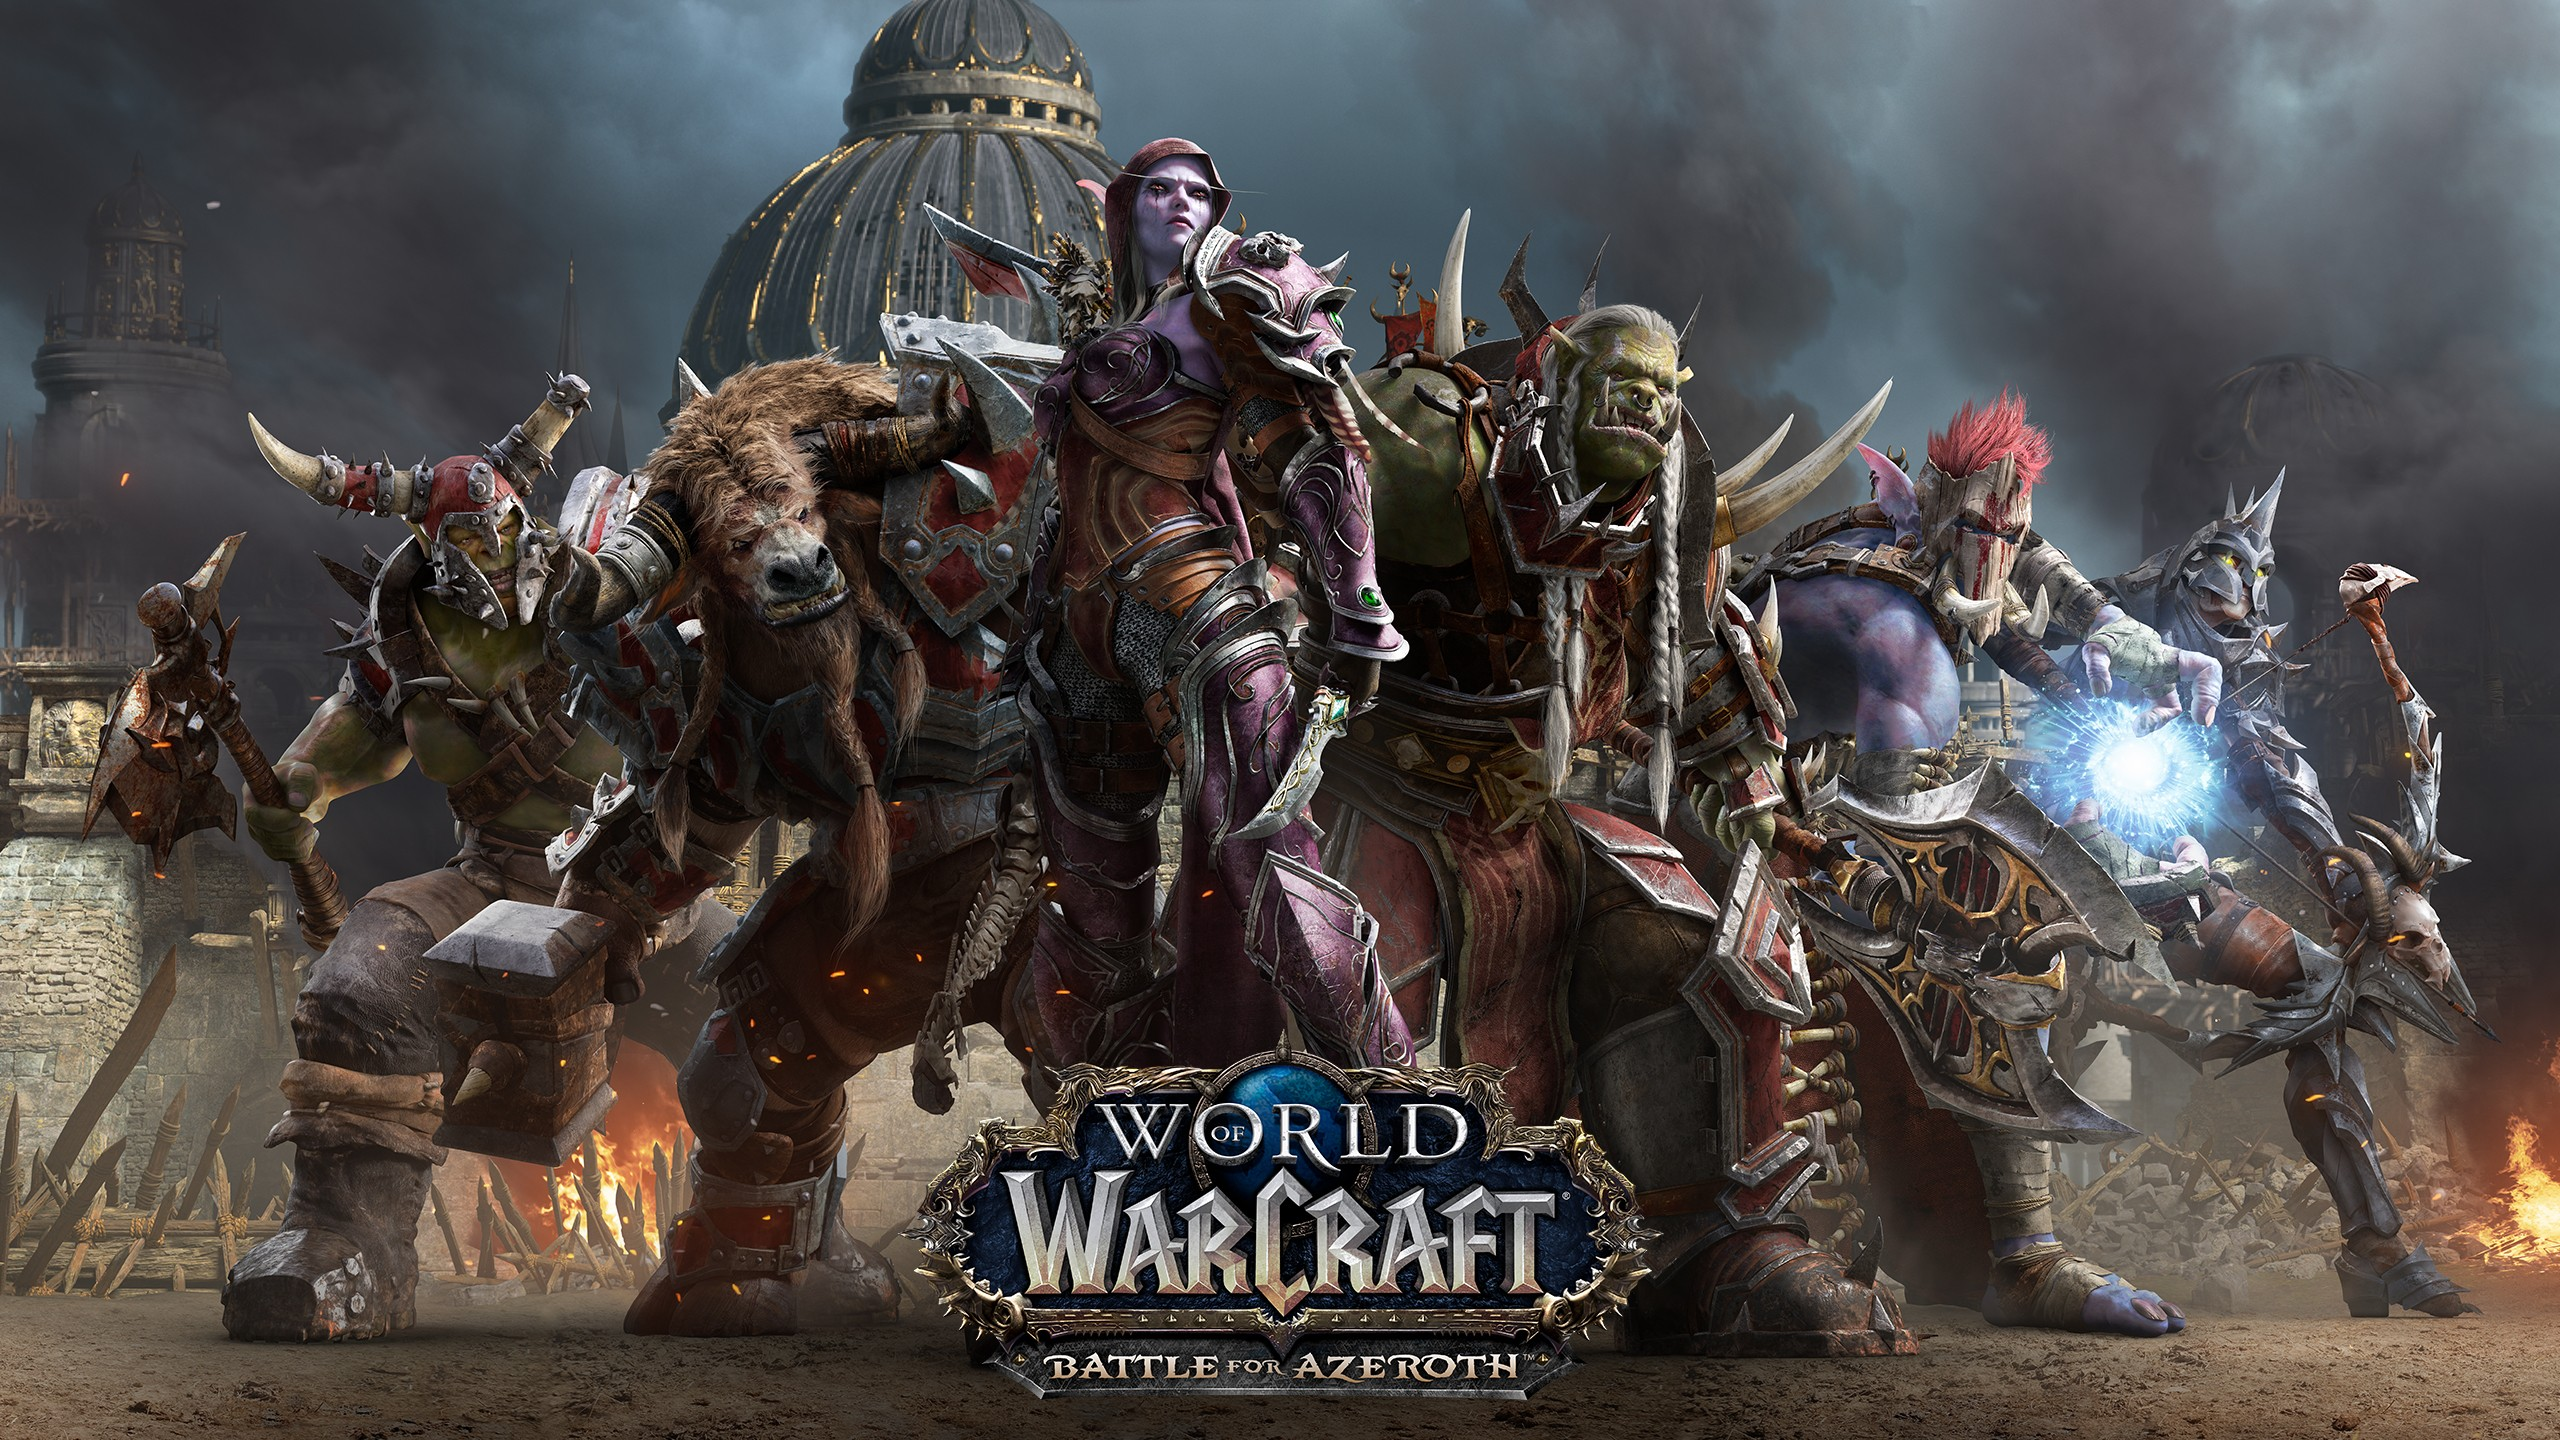 3d Full Hd Wallpaper For Android World Of Warcraft Horde Wallpapers Hd Wallpapers Id 22888